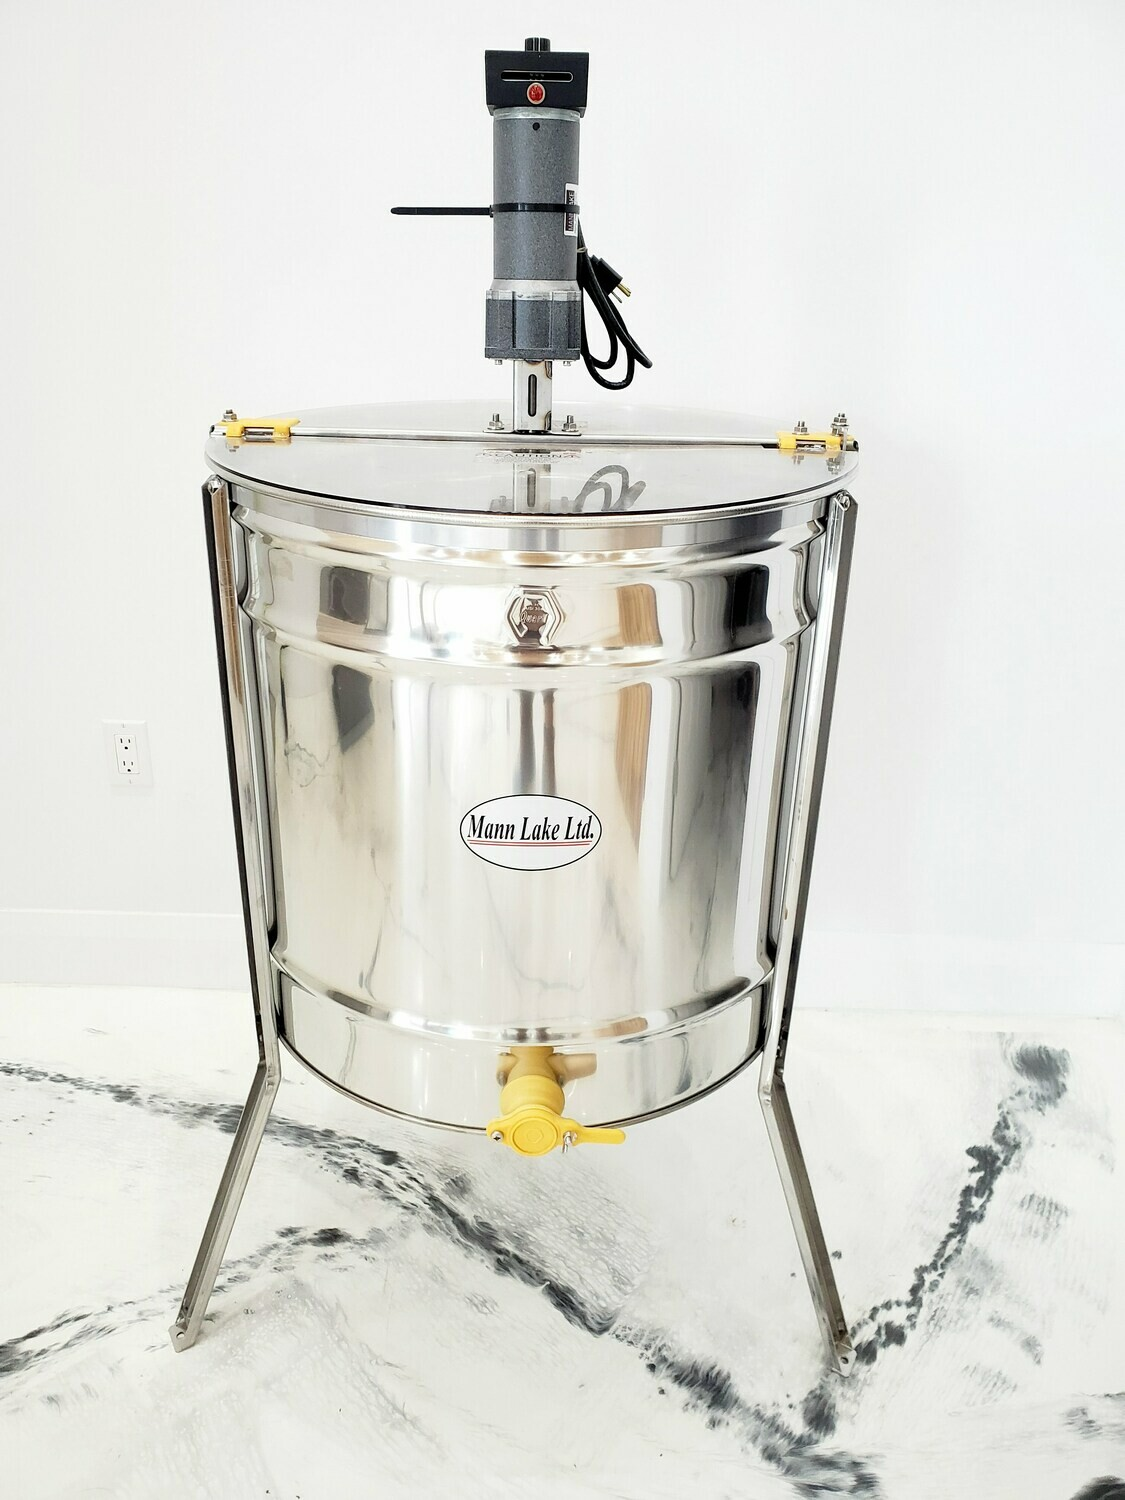 MannLake 18/9 Frame Electric Extractor